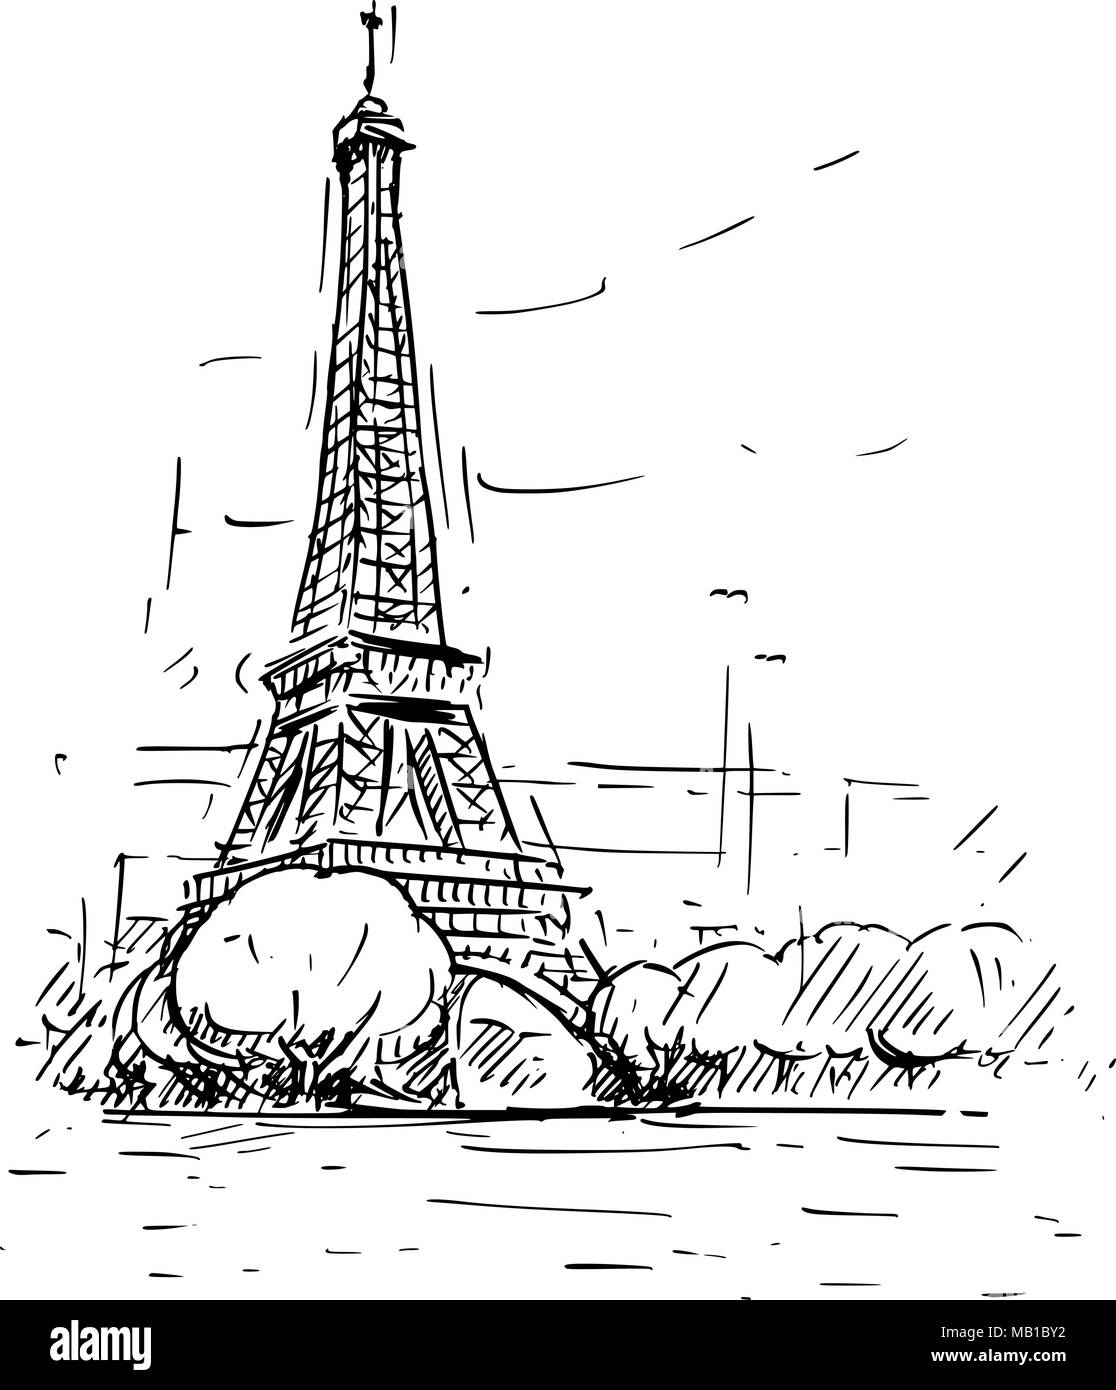 Cartoon Sketch Of Eiffel Tower In Paris France Stock Vector Image Art Alamy